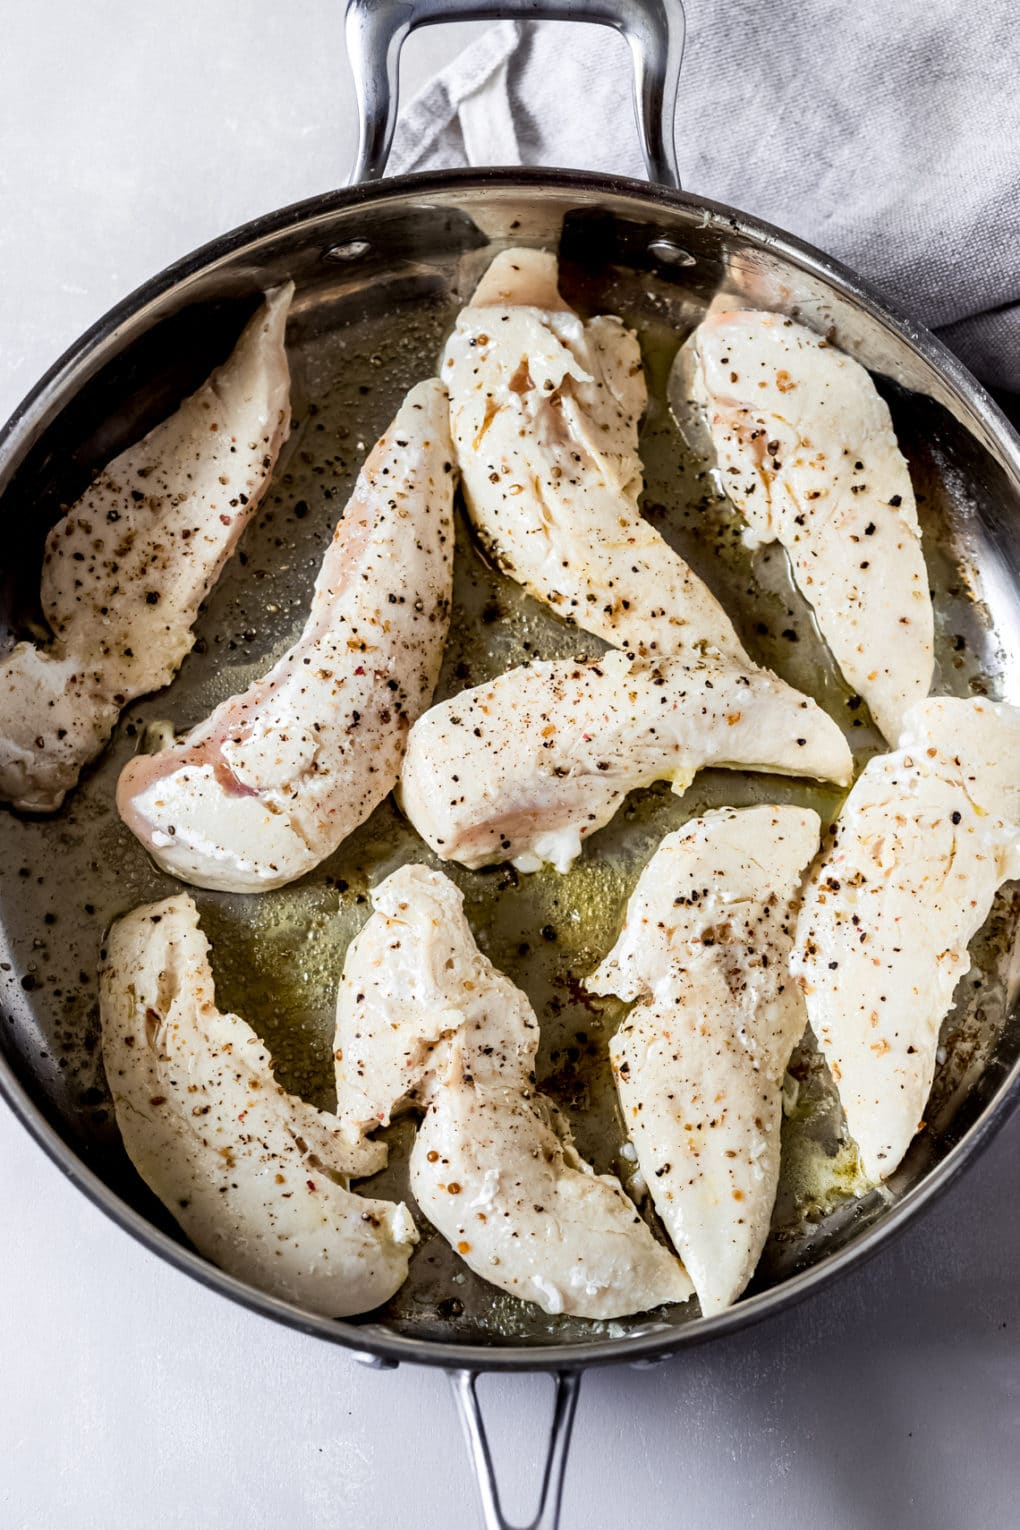 chicken tenders cooking in a stainless steel skillet